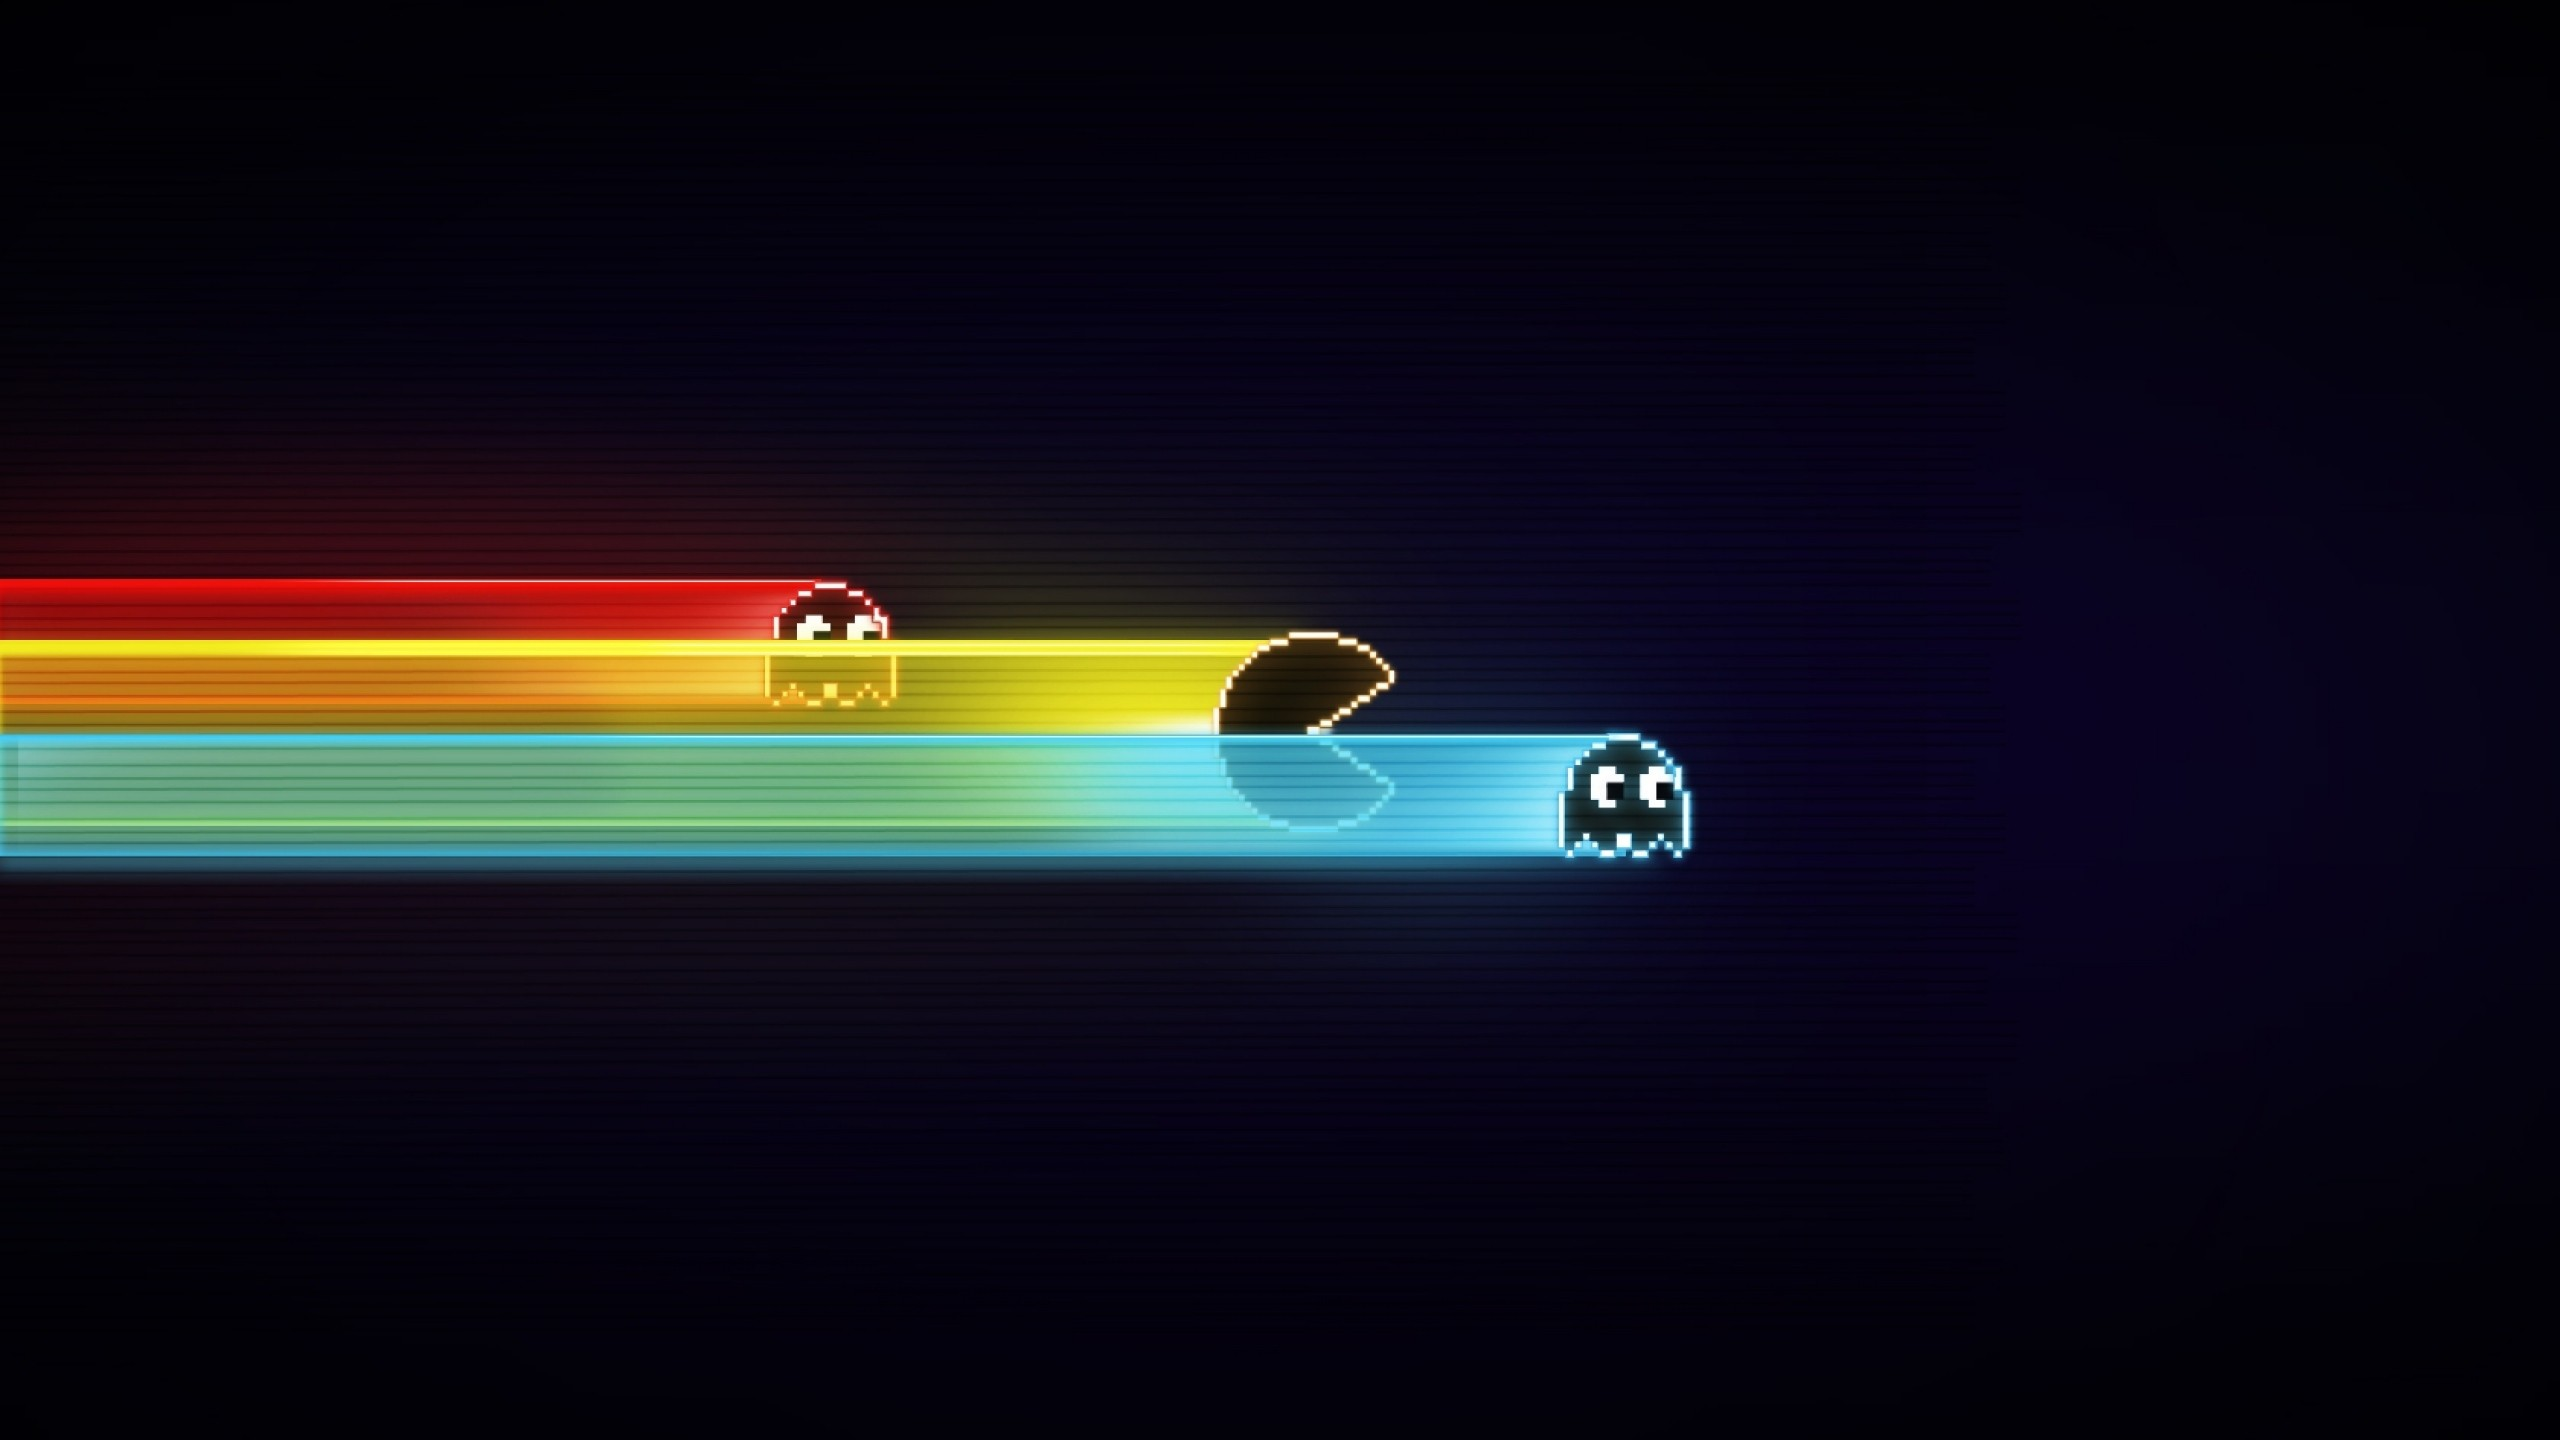 Pacman Iphone 6 Wallpaper Hd: Pacman Background ·① Download Free Amazing Full HD